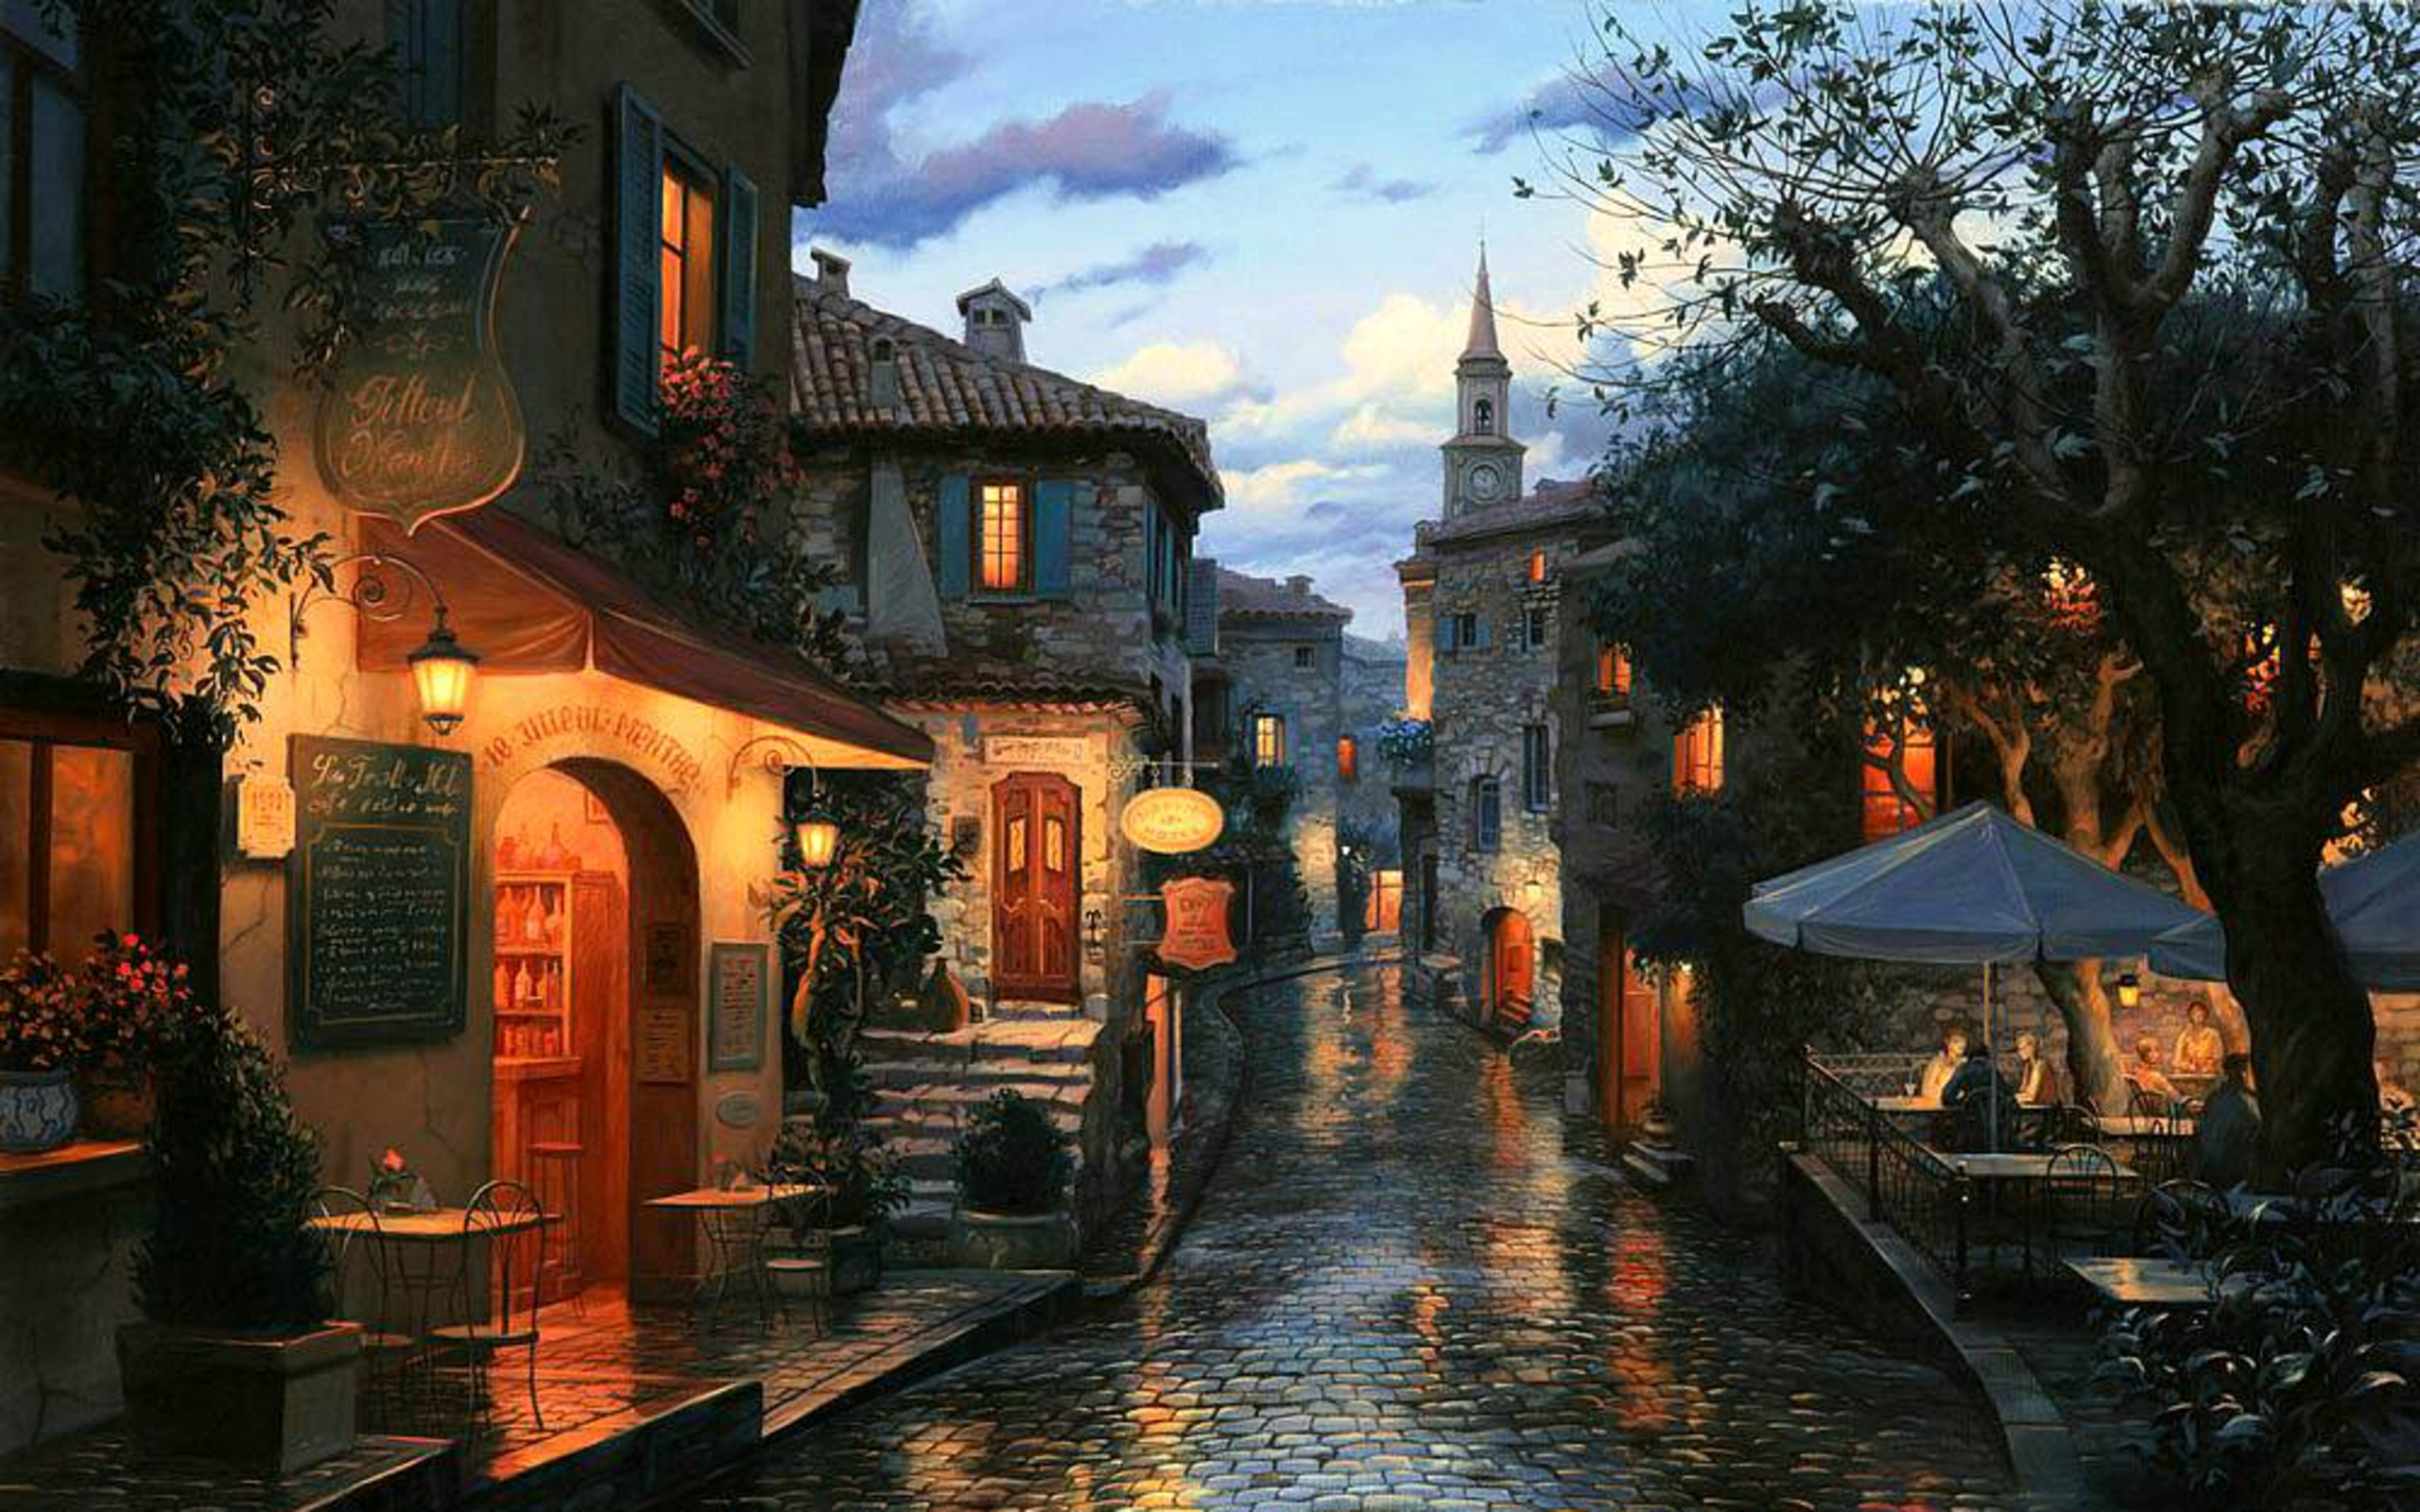 eugeny lushpin painting street cafe bar tables umbrellas houses 2560x1600